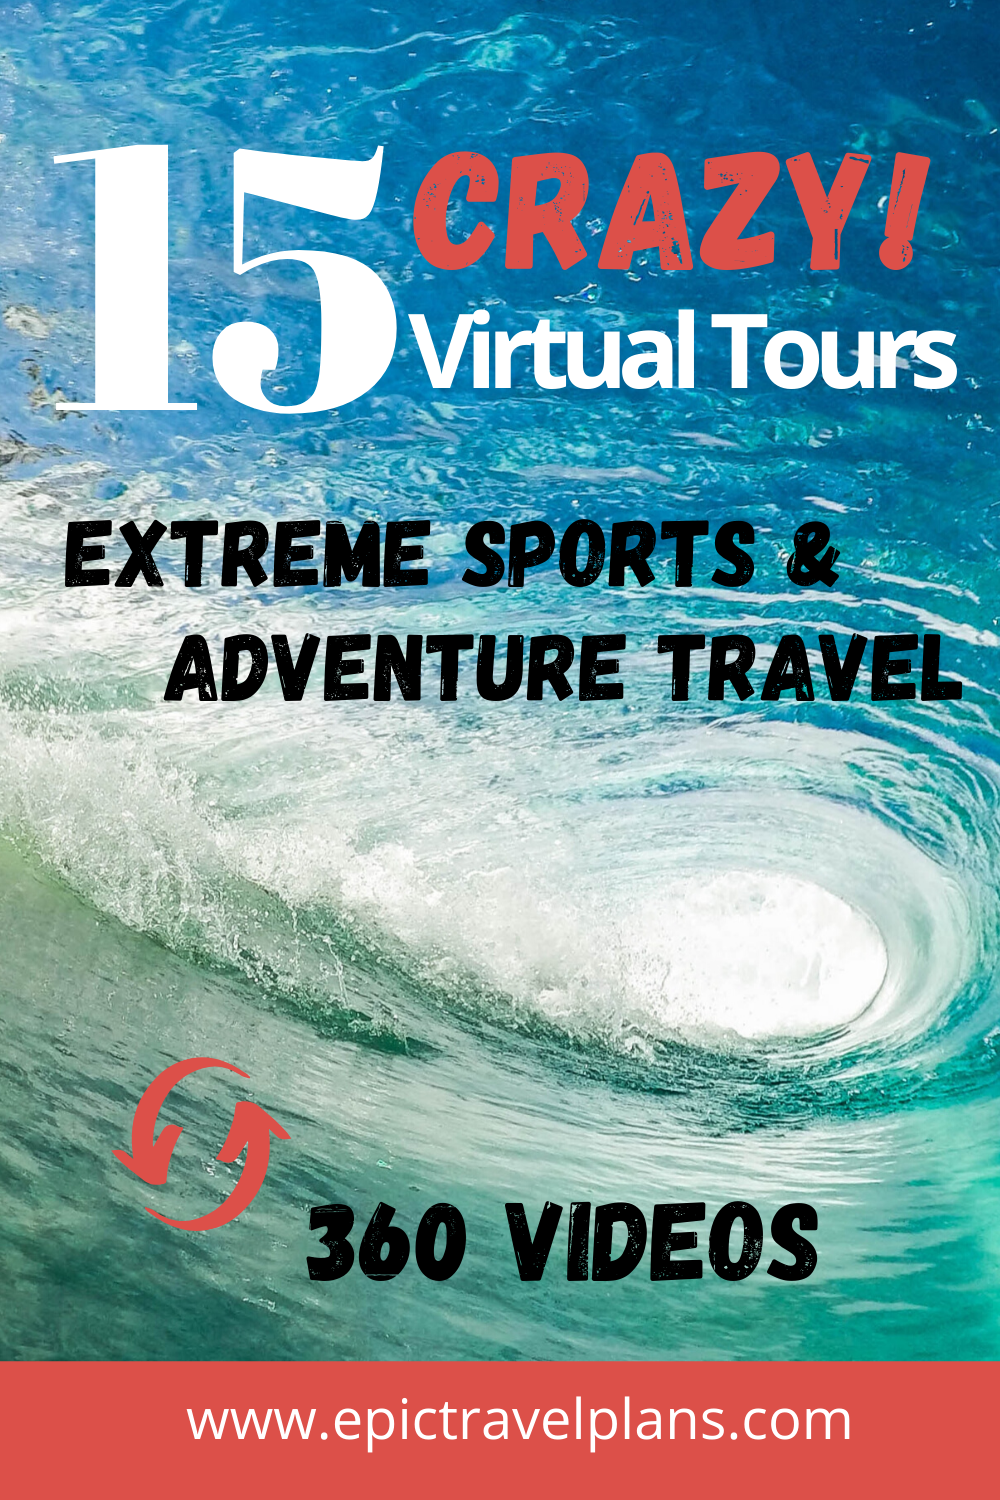 Virtual tours of extreme sports and adventure travel, 360 videos, VR videos